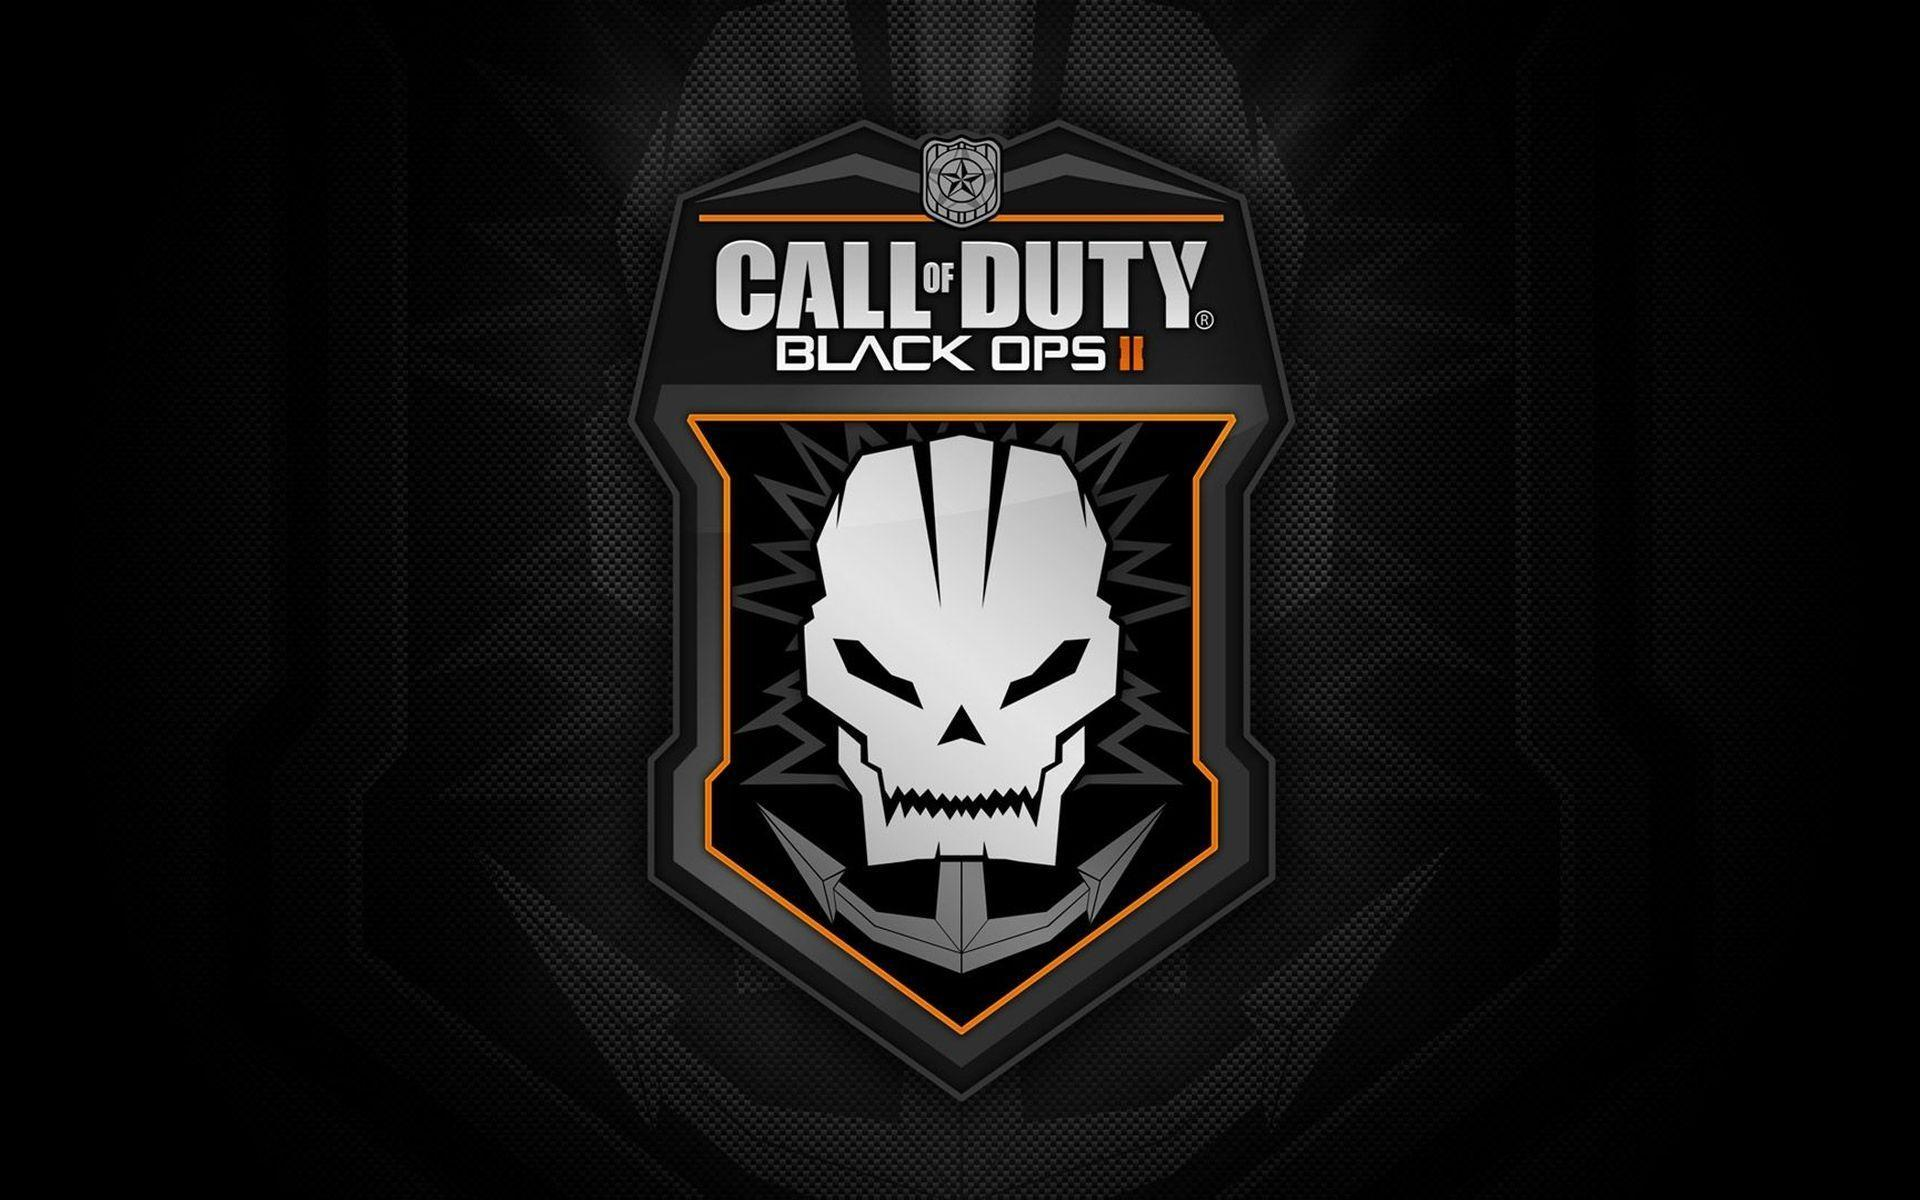 Black Ops 3 Live Wallpaper Posted By Sarah Tremblay